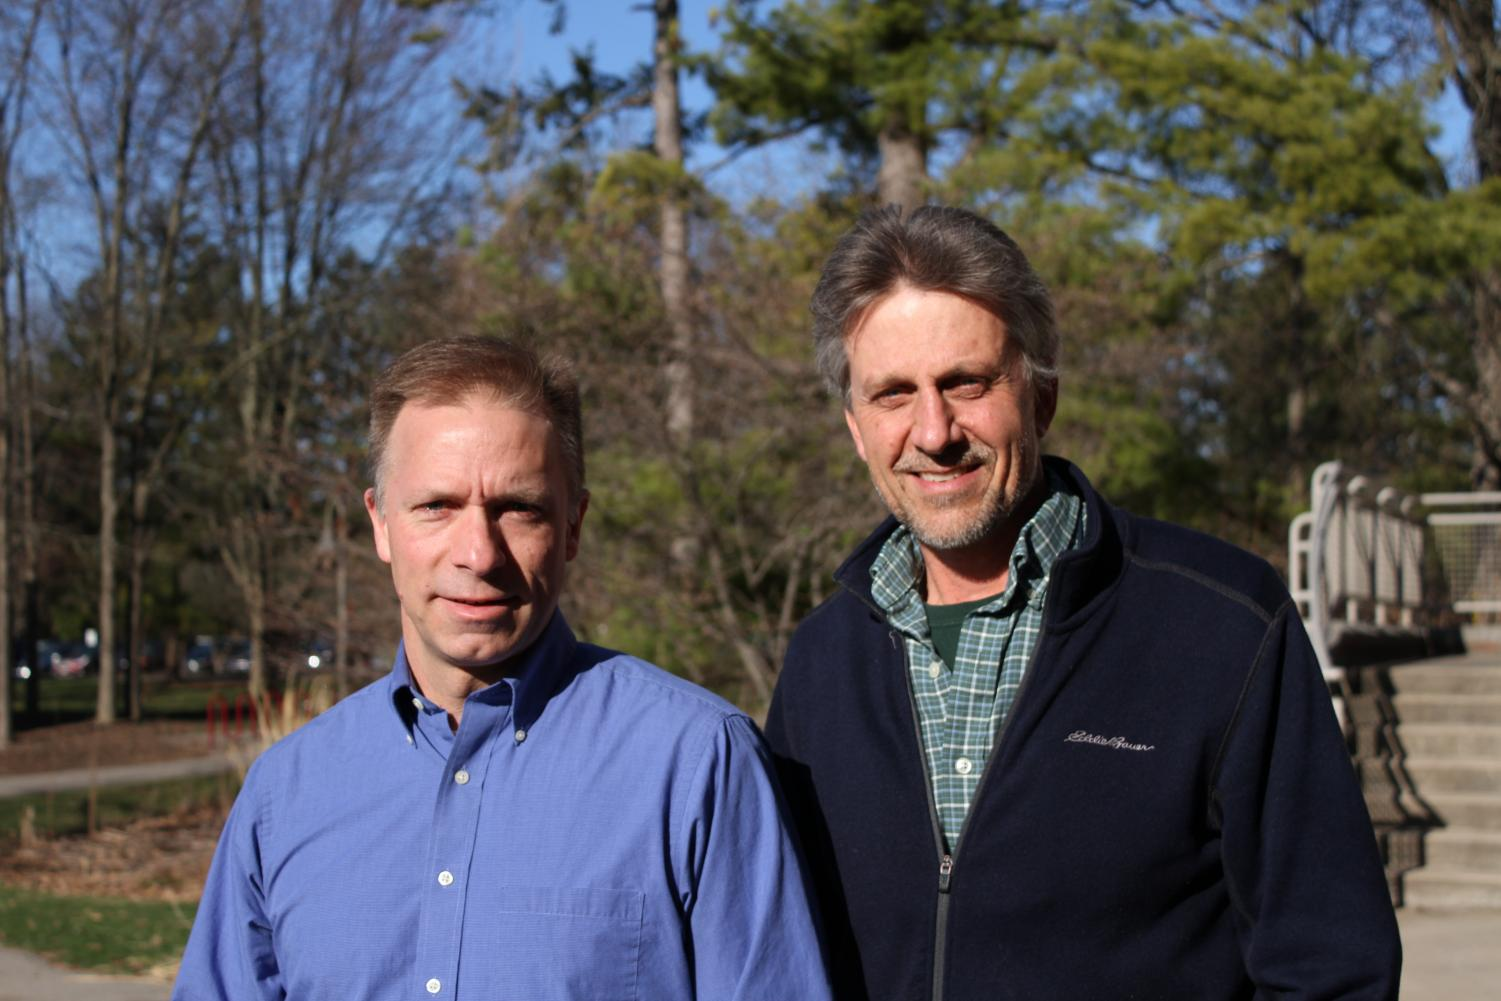 Professors Heun (left) and Warners (right) are planning a seminar for the summer in an effort to change the way Christians think about caring for the planet. Photo by David Fitch.